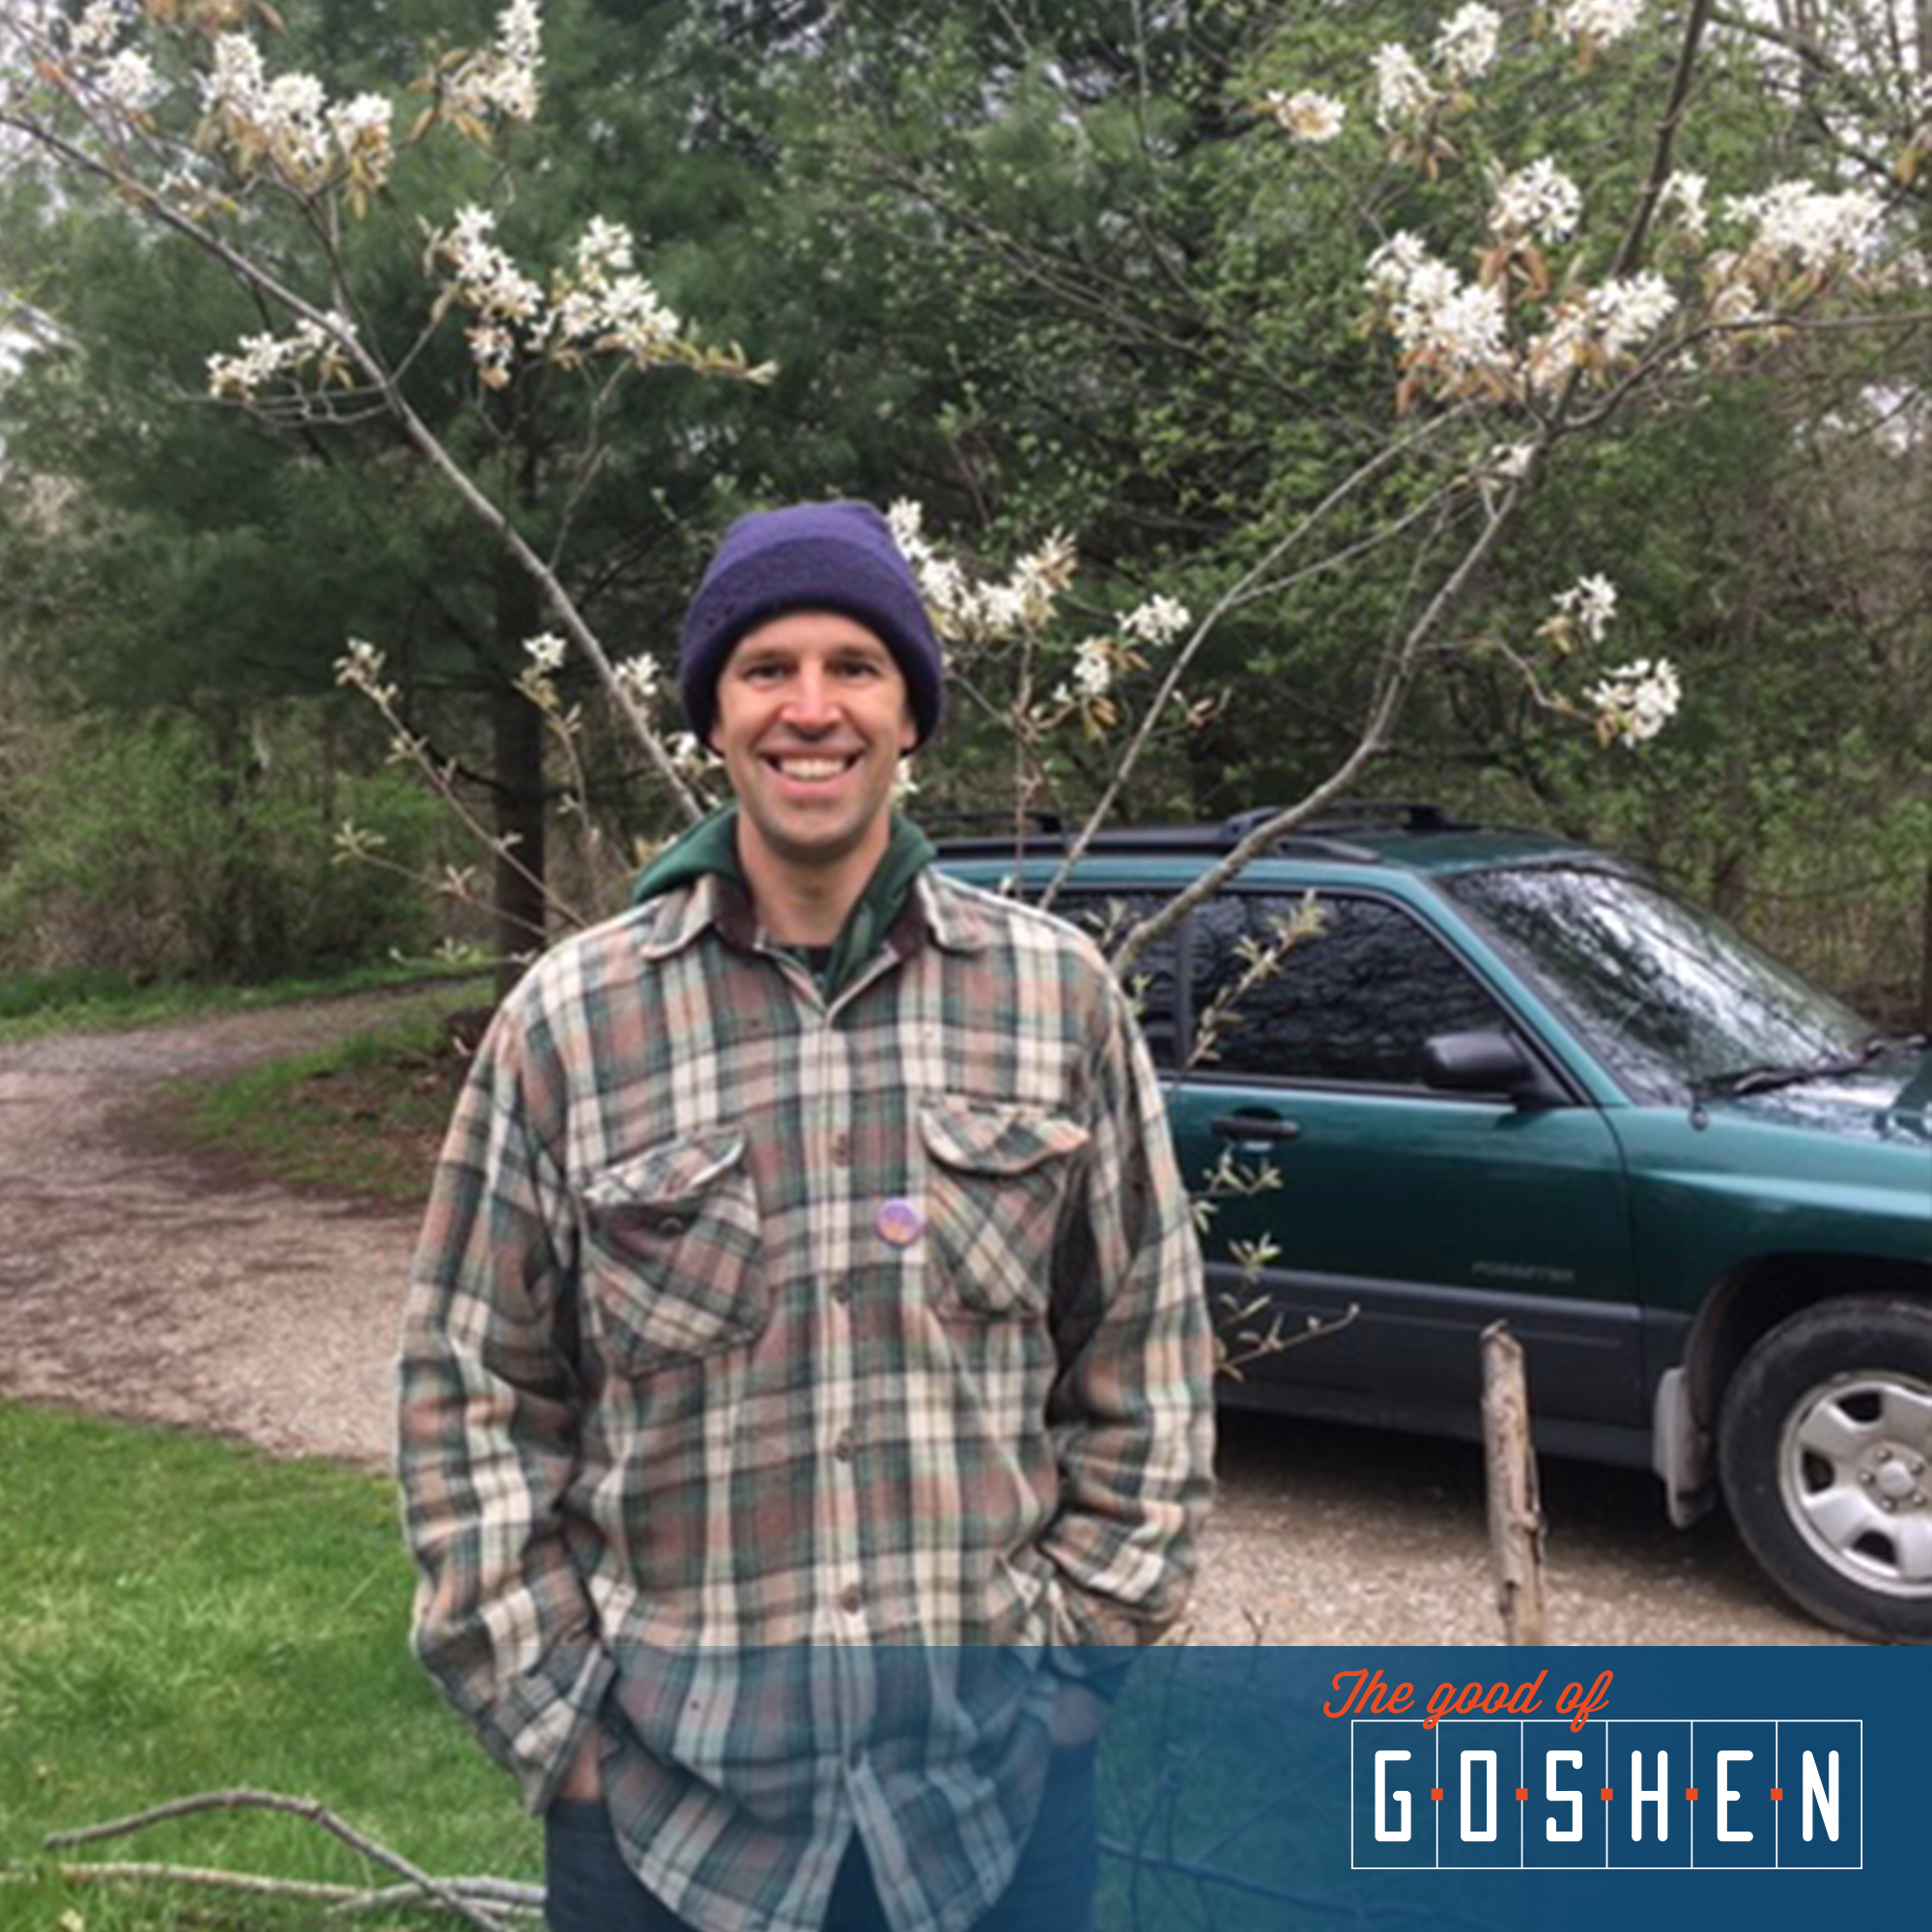 Aaron Sawatsky-Kingsley • The Good of Goshen